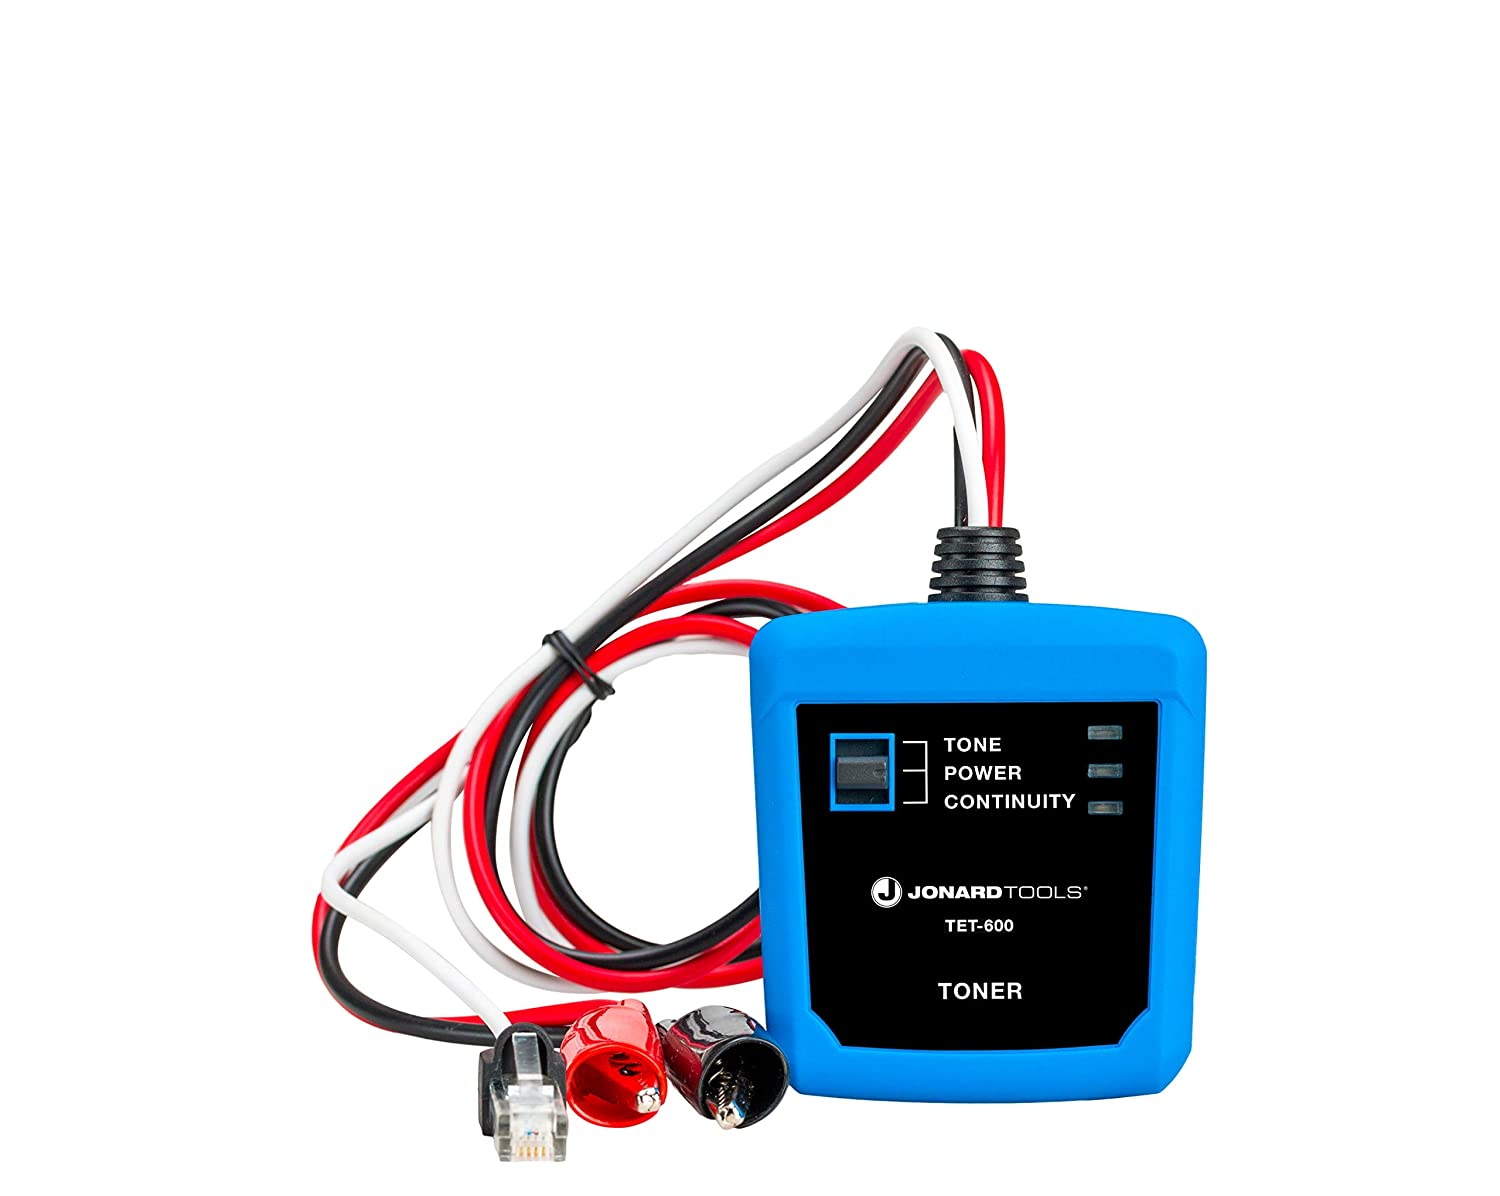 Jonard Tools TET-600 Cable Tester and Toner for Testing Cable Continuity and Telephone Line Polarity